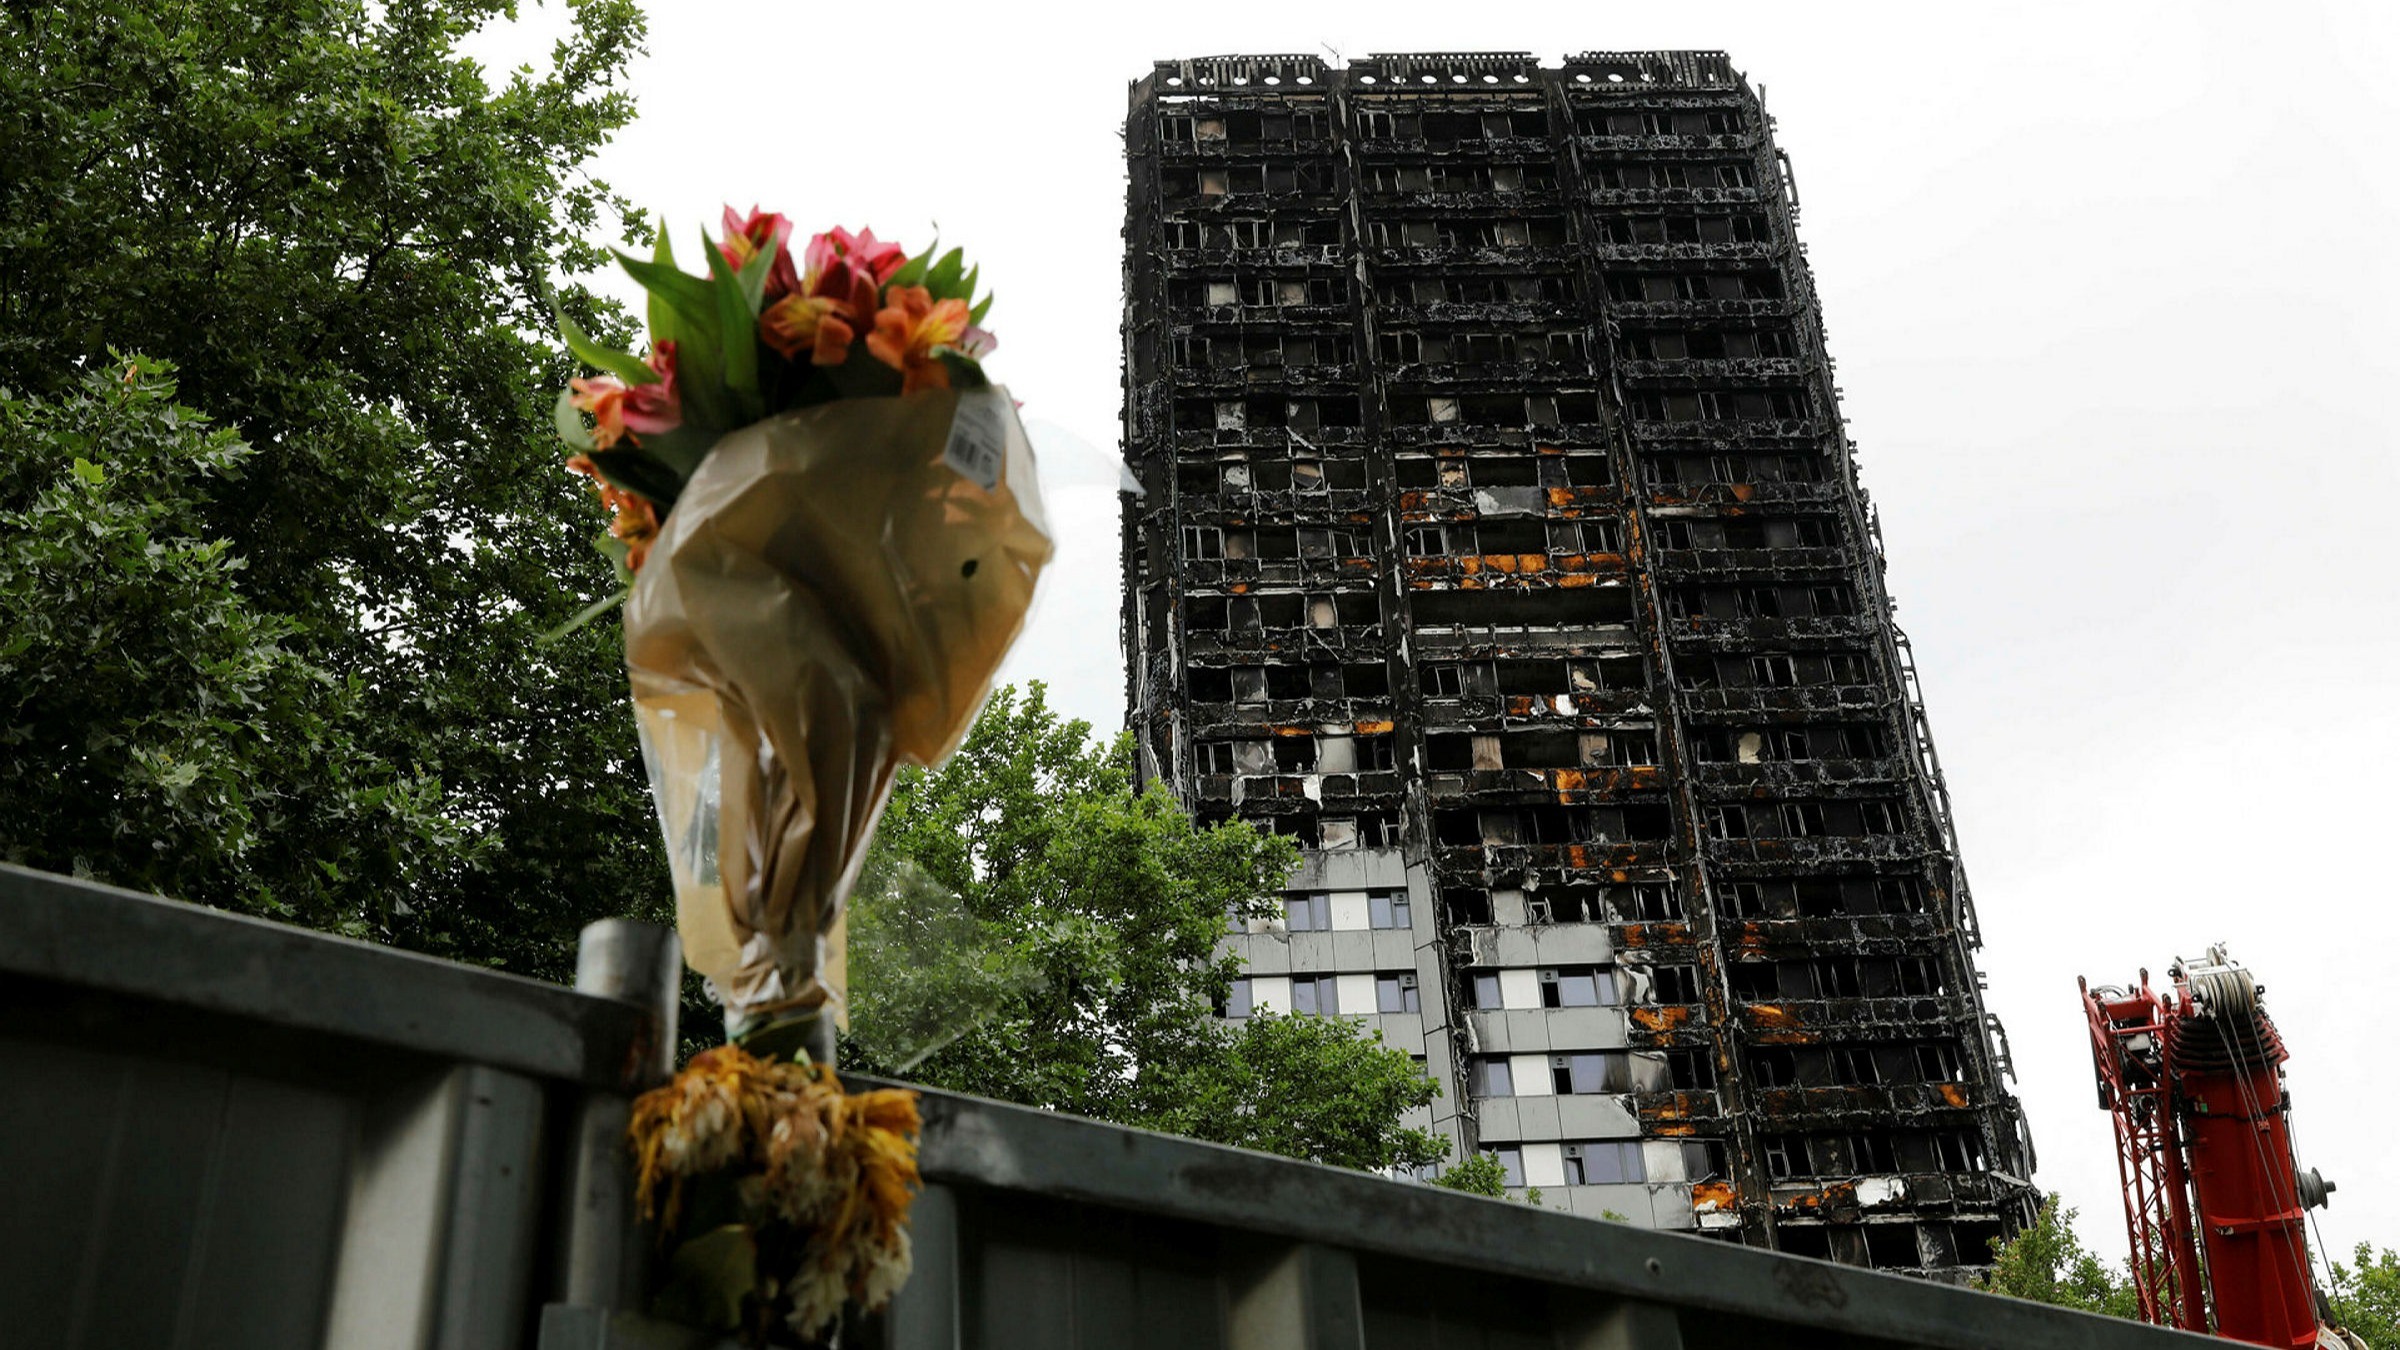 Thousands of Brits are left in danger by inadequate fire safety features